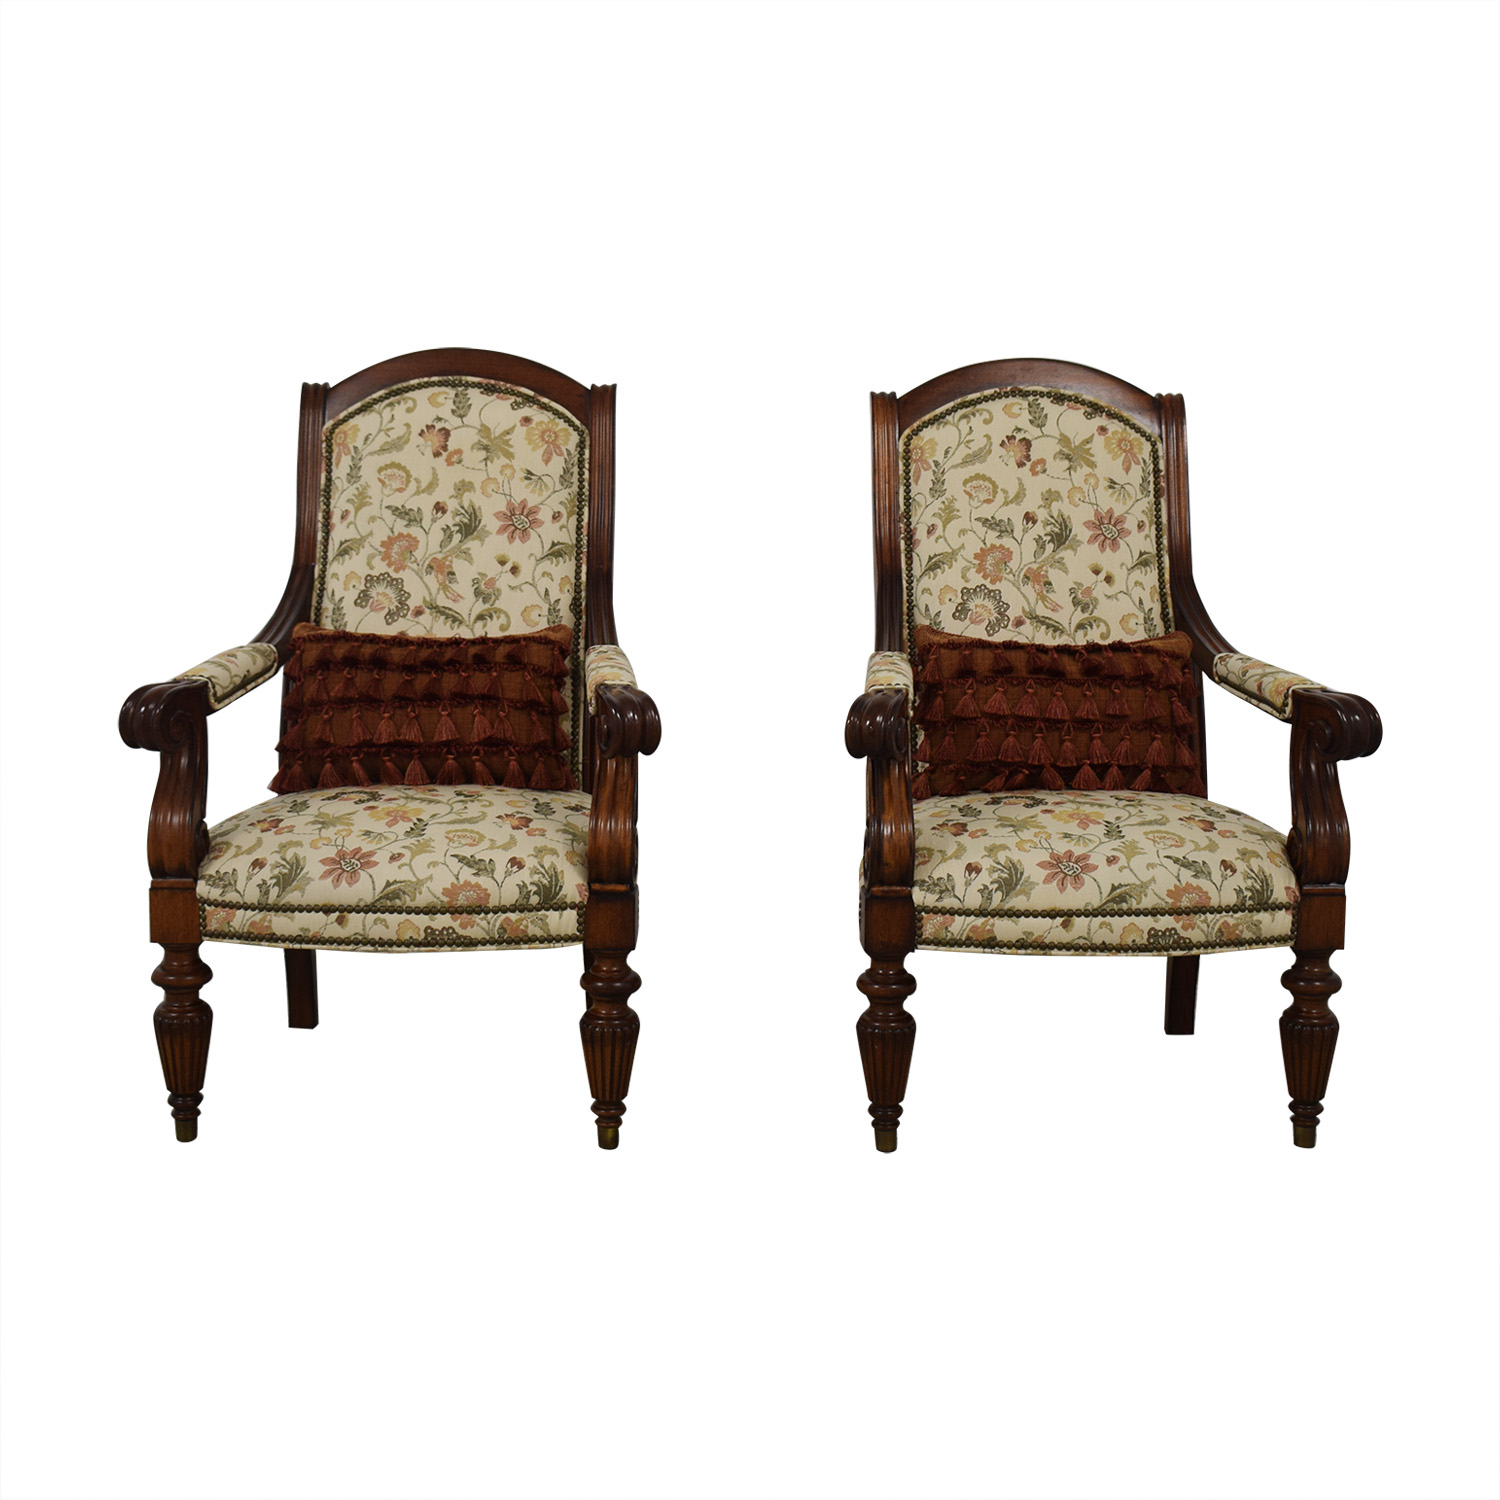 buy Kravet Accent Chairs Kravet